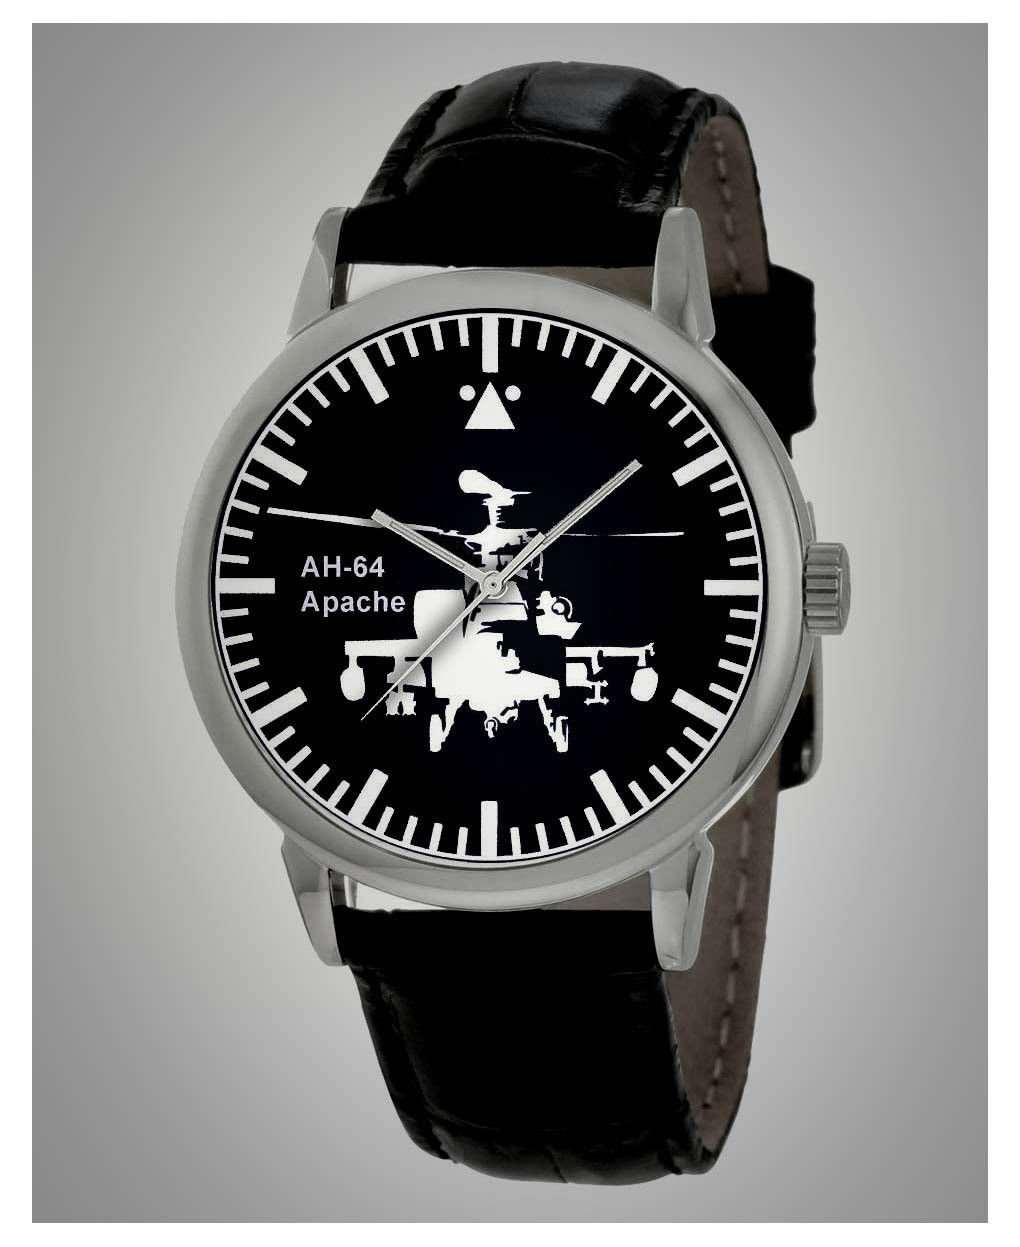 CLASSIC APACHE AH-64 ATTACK HELICOPTER US ARMY SILHOUETTE ART WRIST WATCH, MINT!